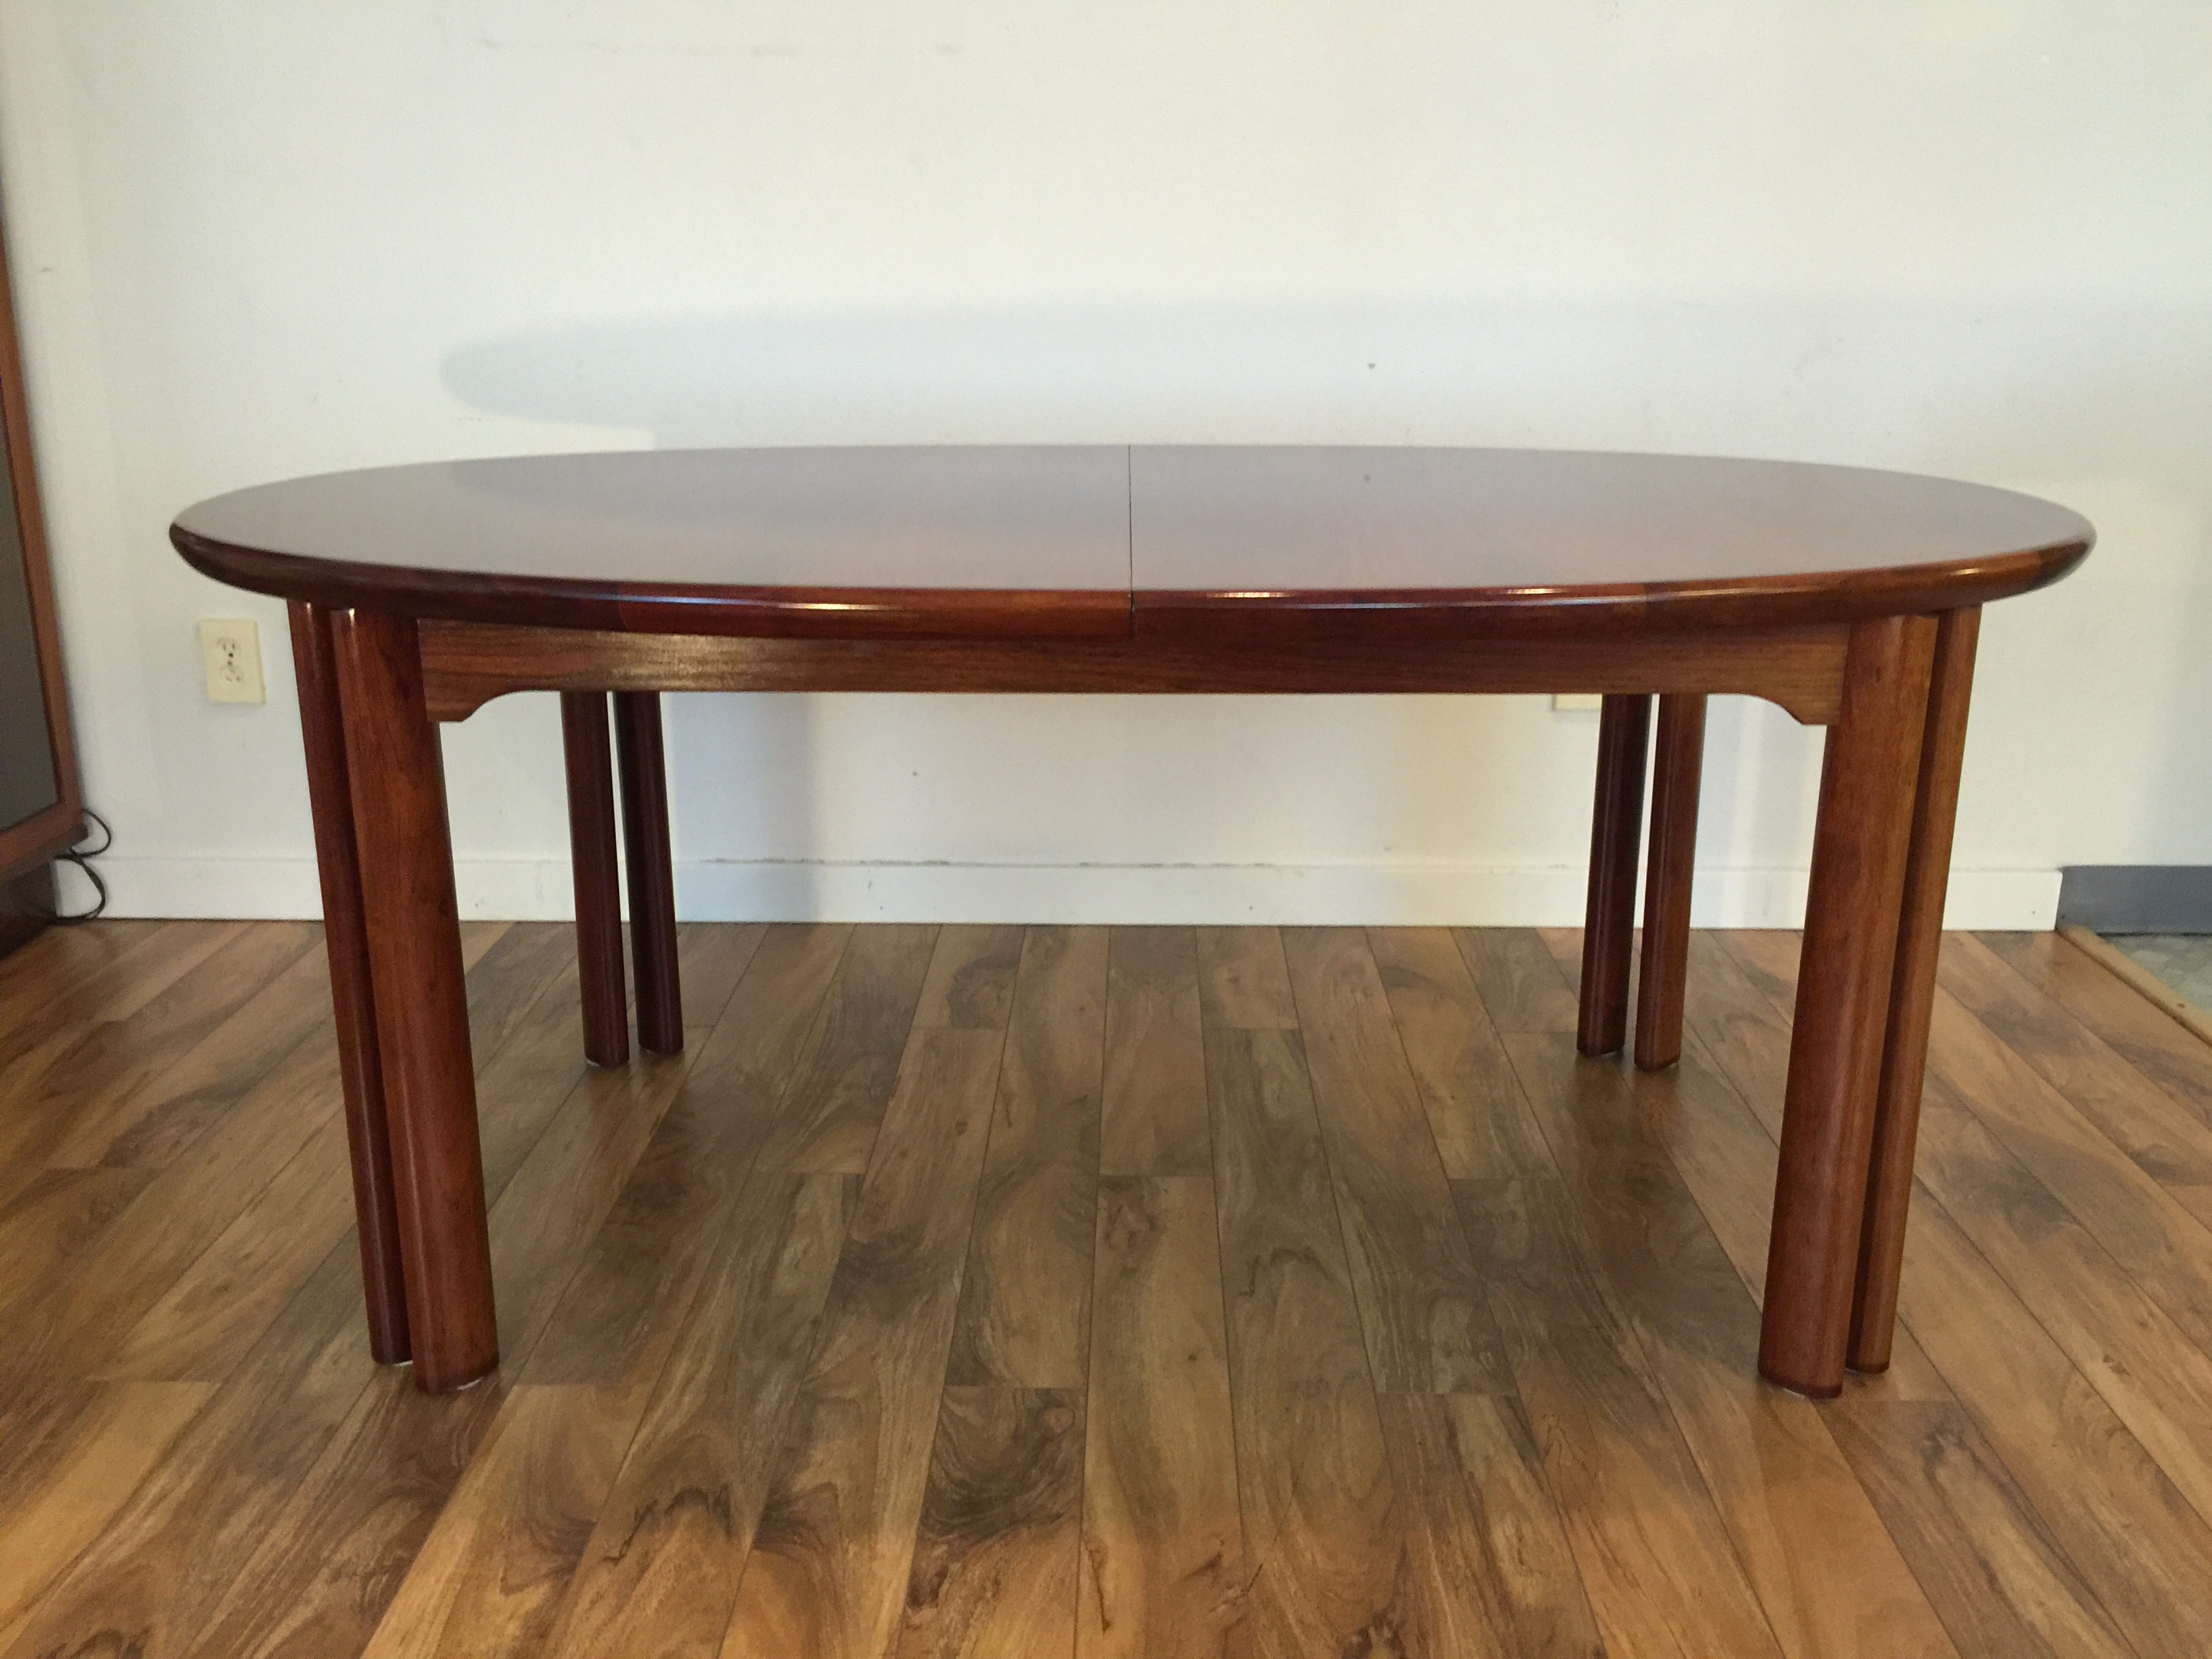 Danish Rosewood Dining Set Table amp 8 Chairs Chairish : bda9979a ec5e 4397 91af 03e53946b126aspectfitampwidth640ampheight640 from www.chairish.com size 640 x 640 jpeg 34kB